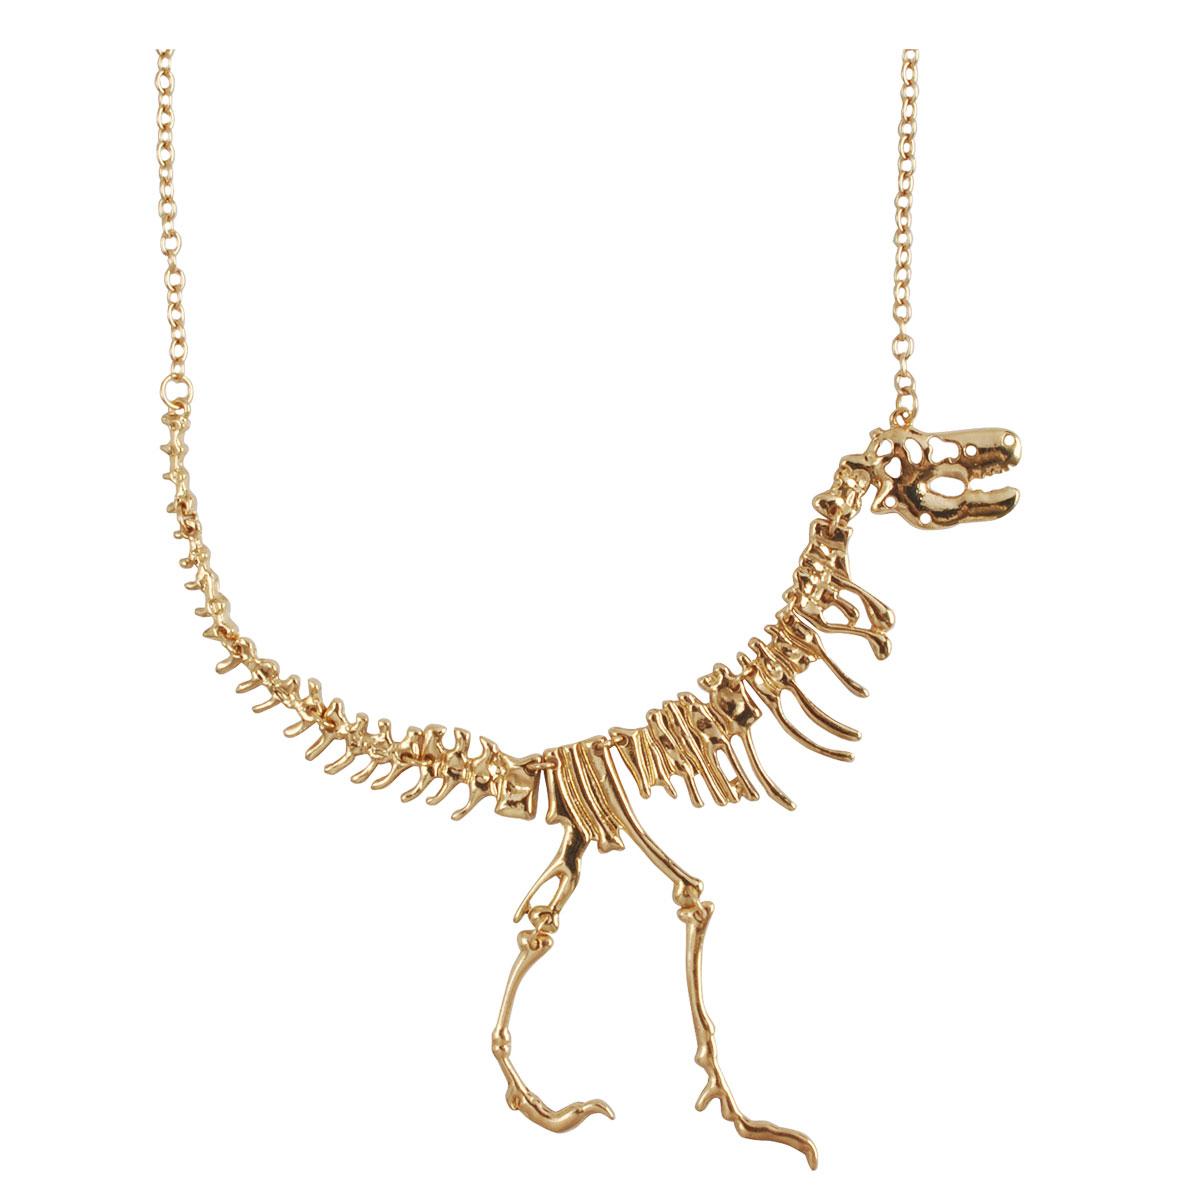 Dinosaur Fossil Skeleton Necklace Pendant